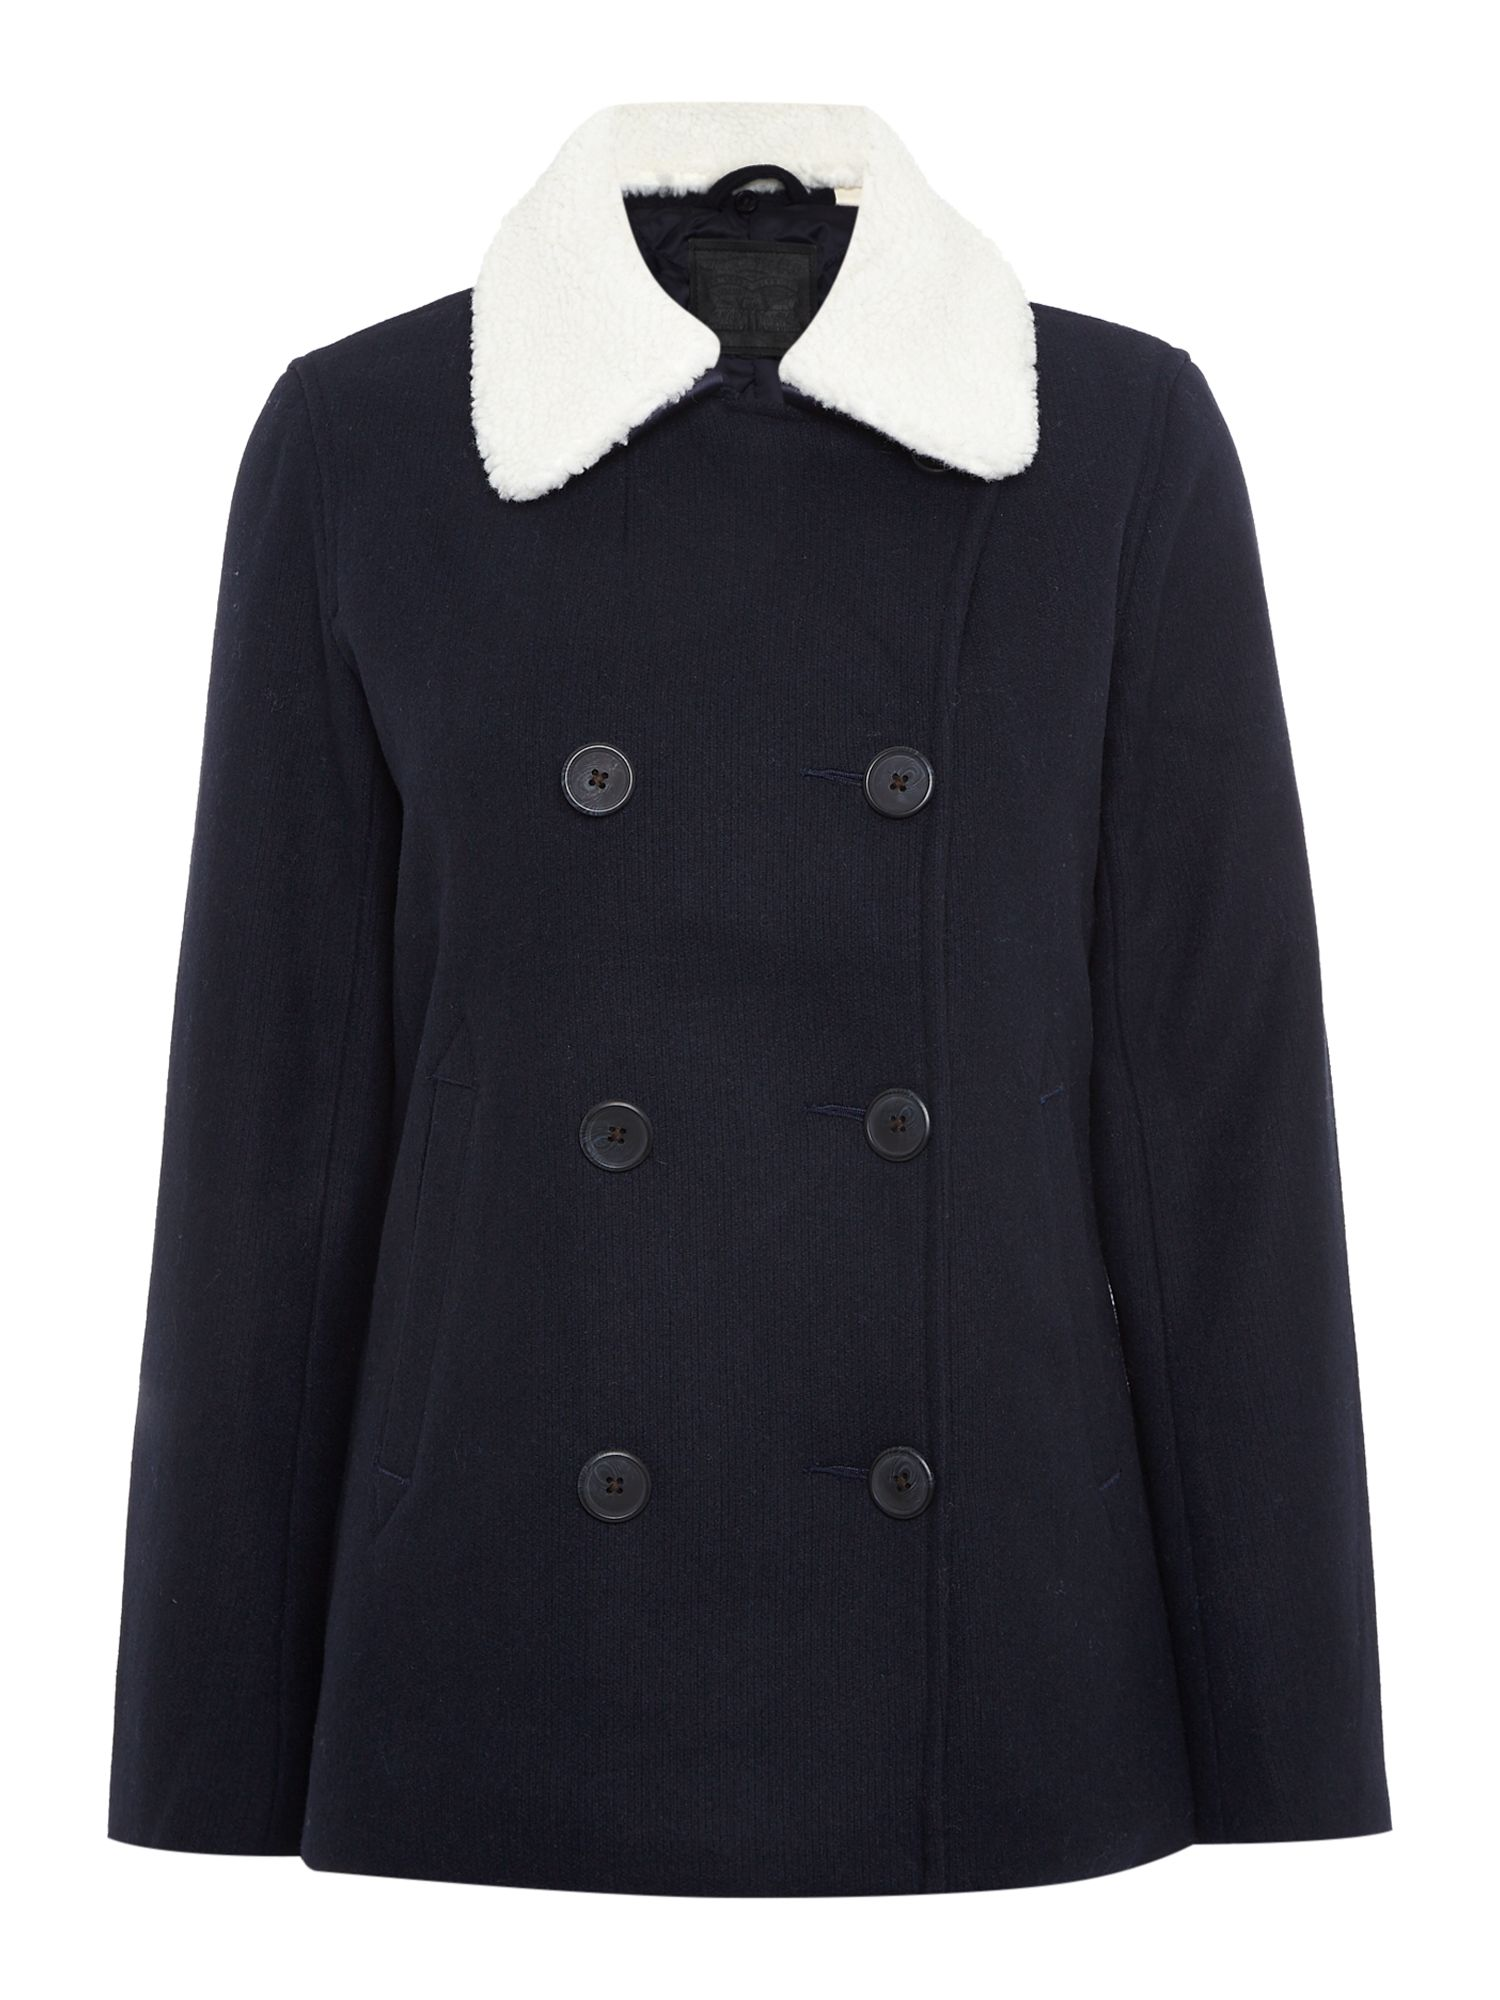 Levi's Wool peacoat in nightwatch blue, Blue